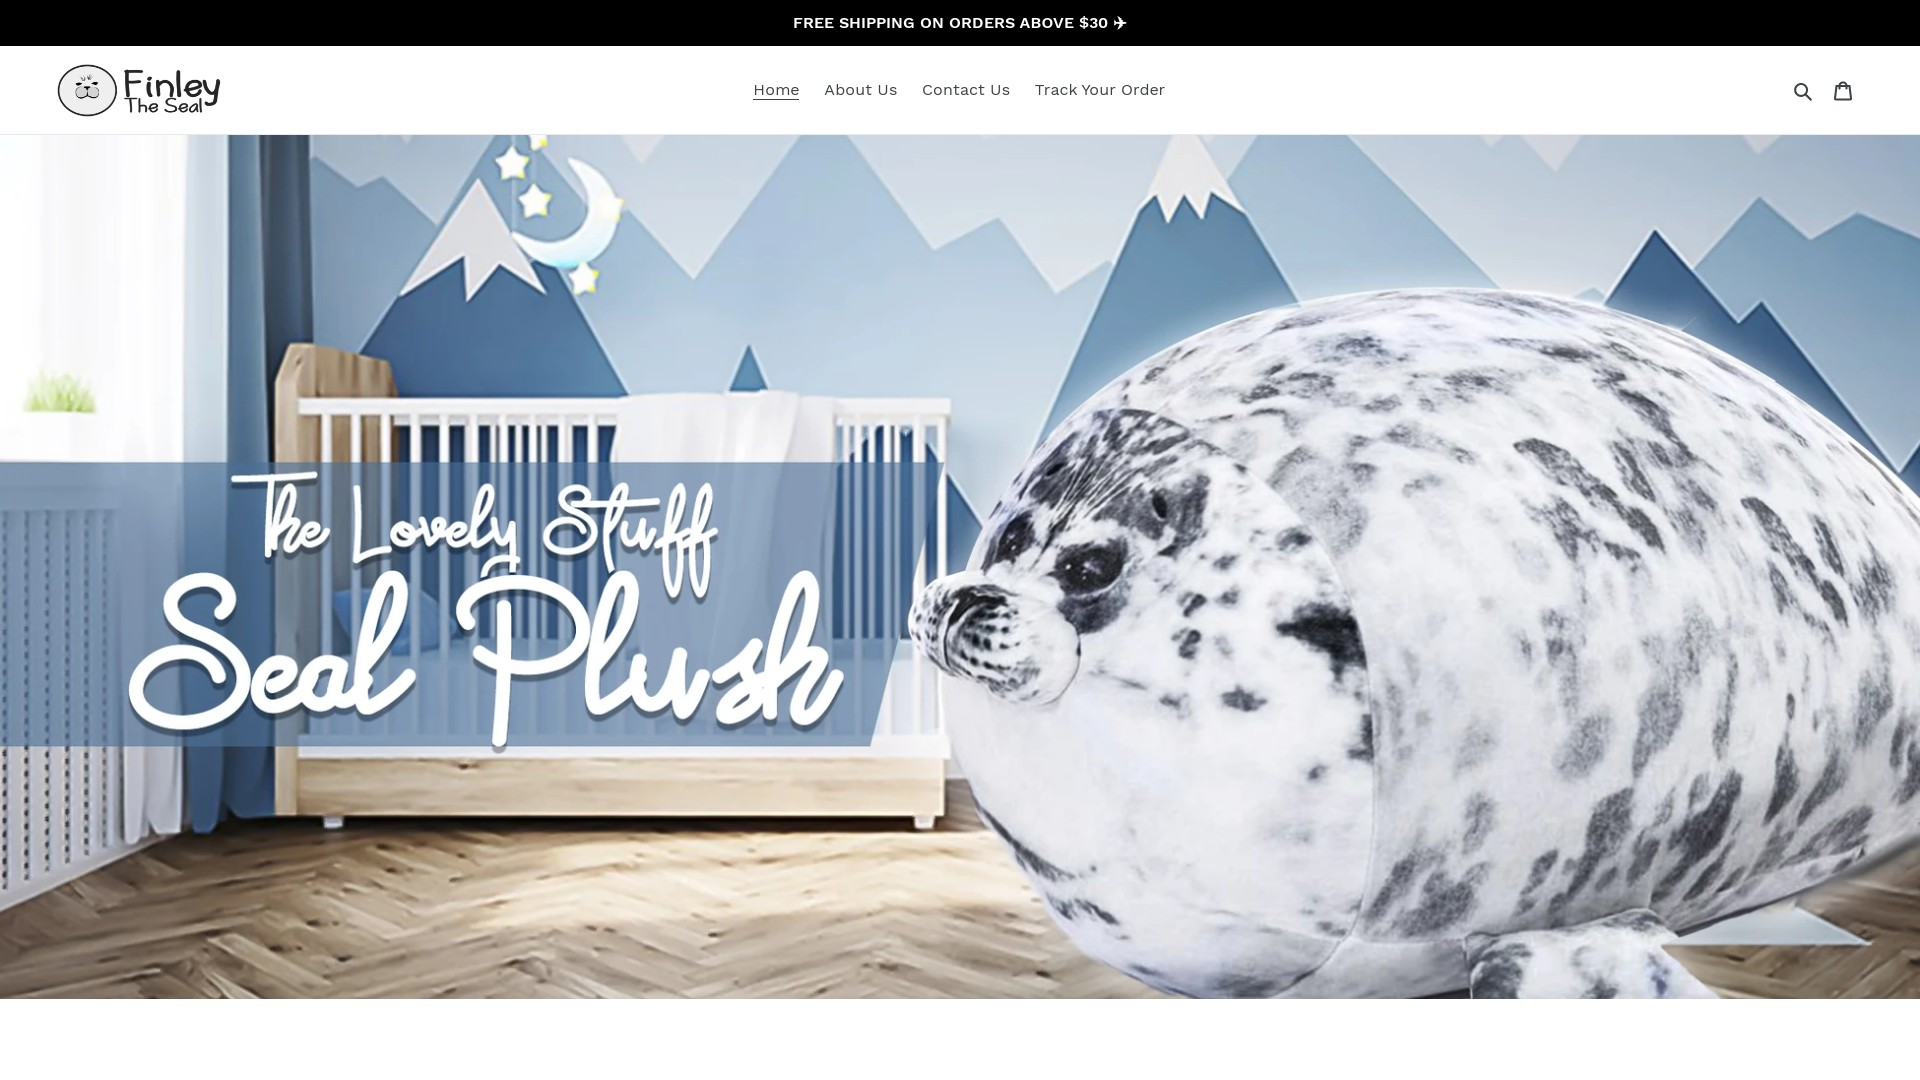 Is Finley The Seal a Scam? Review of the Online Store